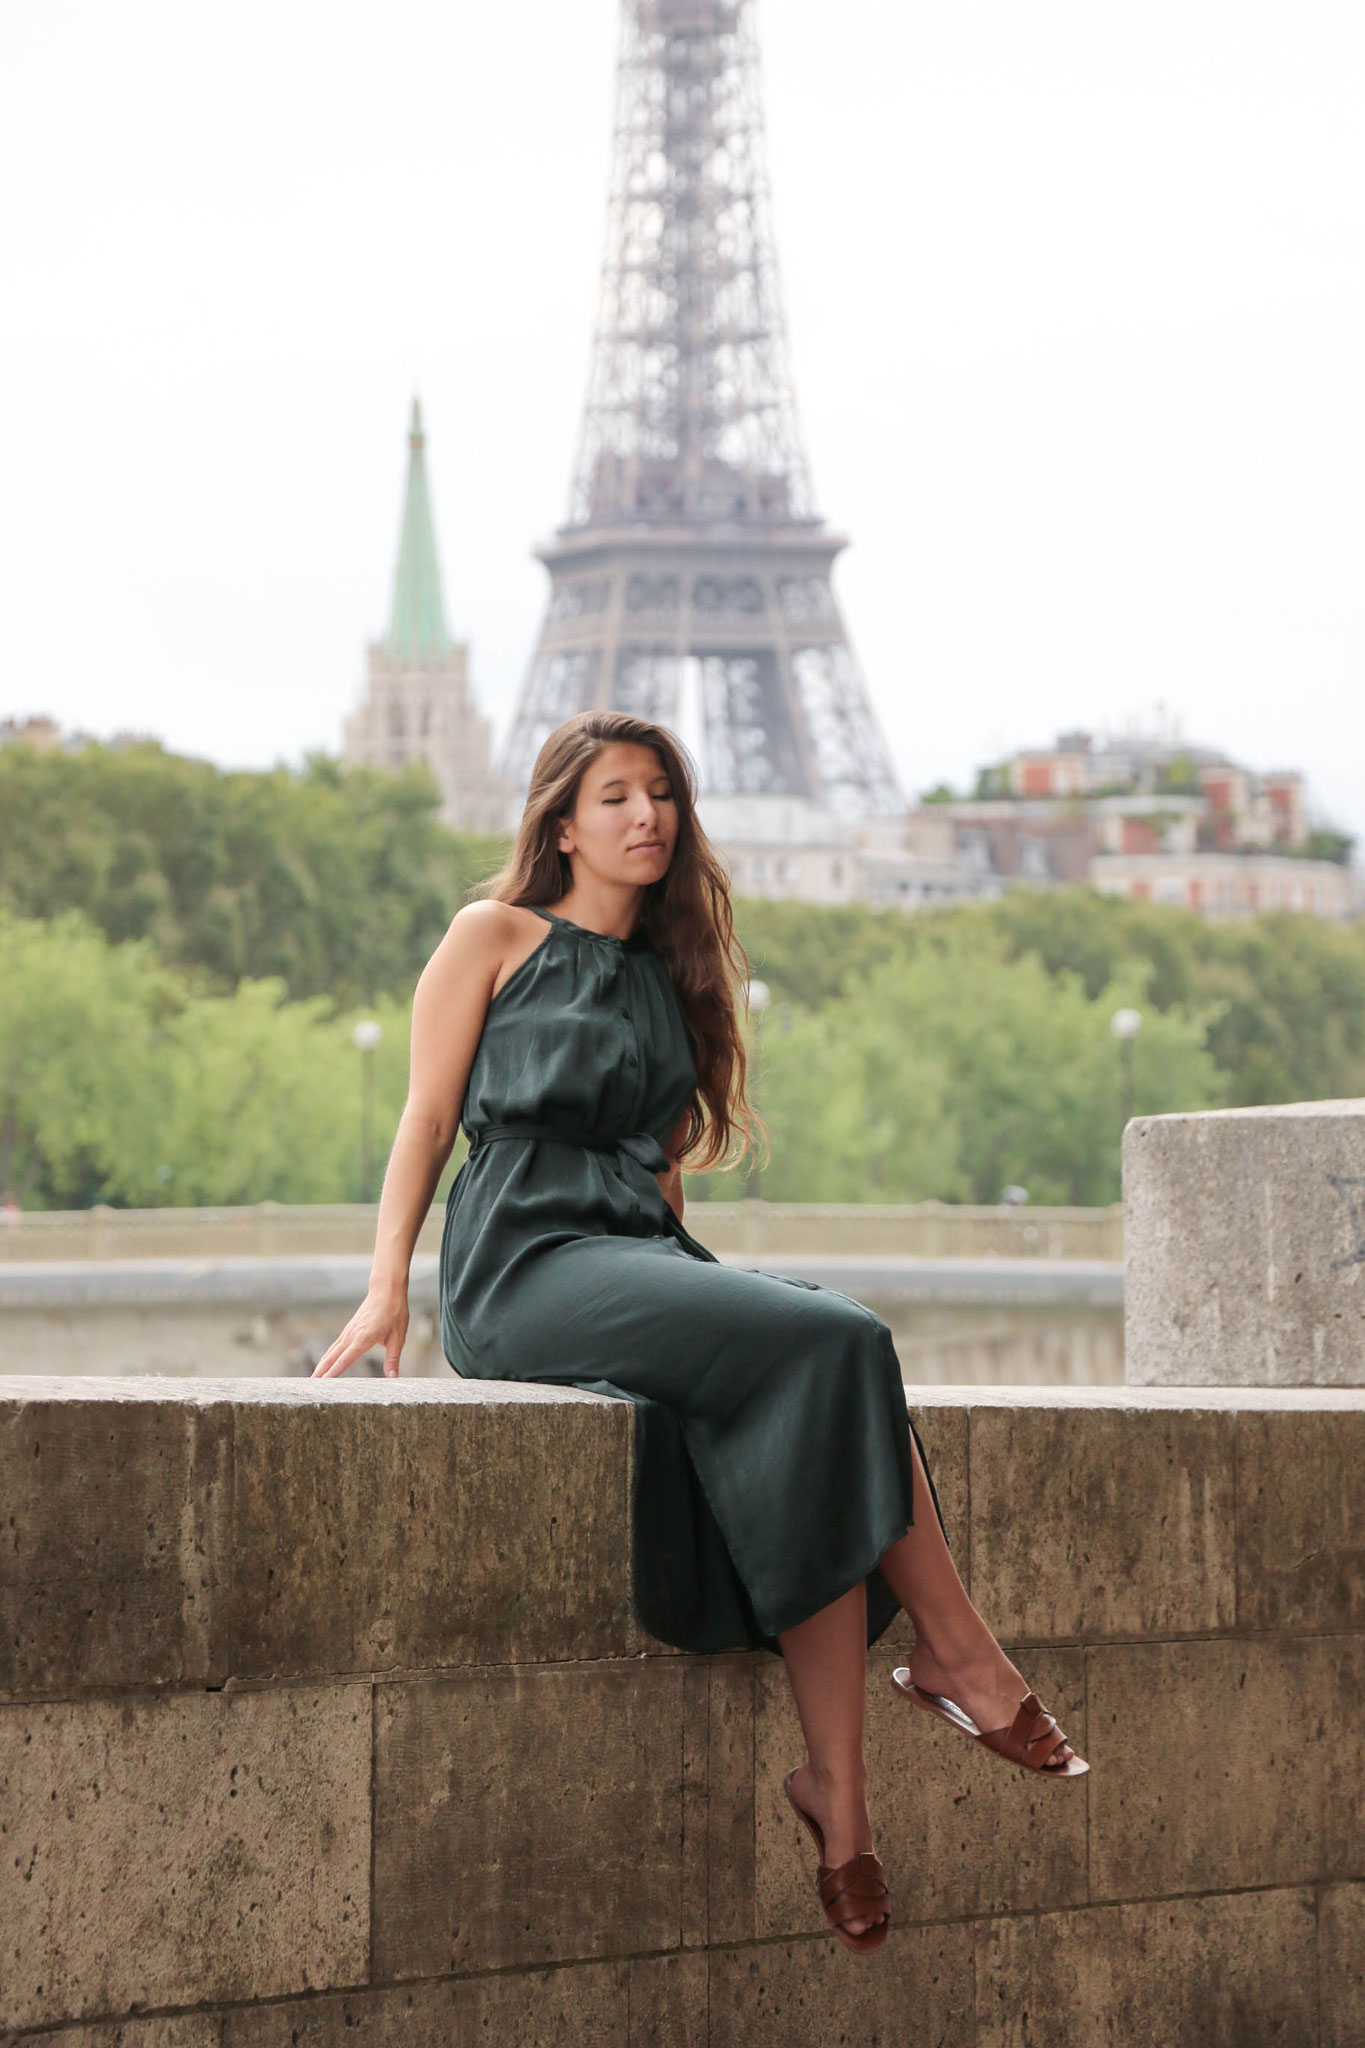 Green Satin Dress, Paris, Tour Eiffel, Carmen Schubert